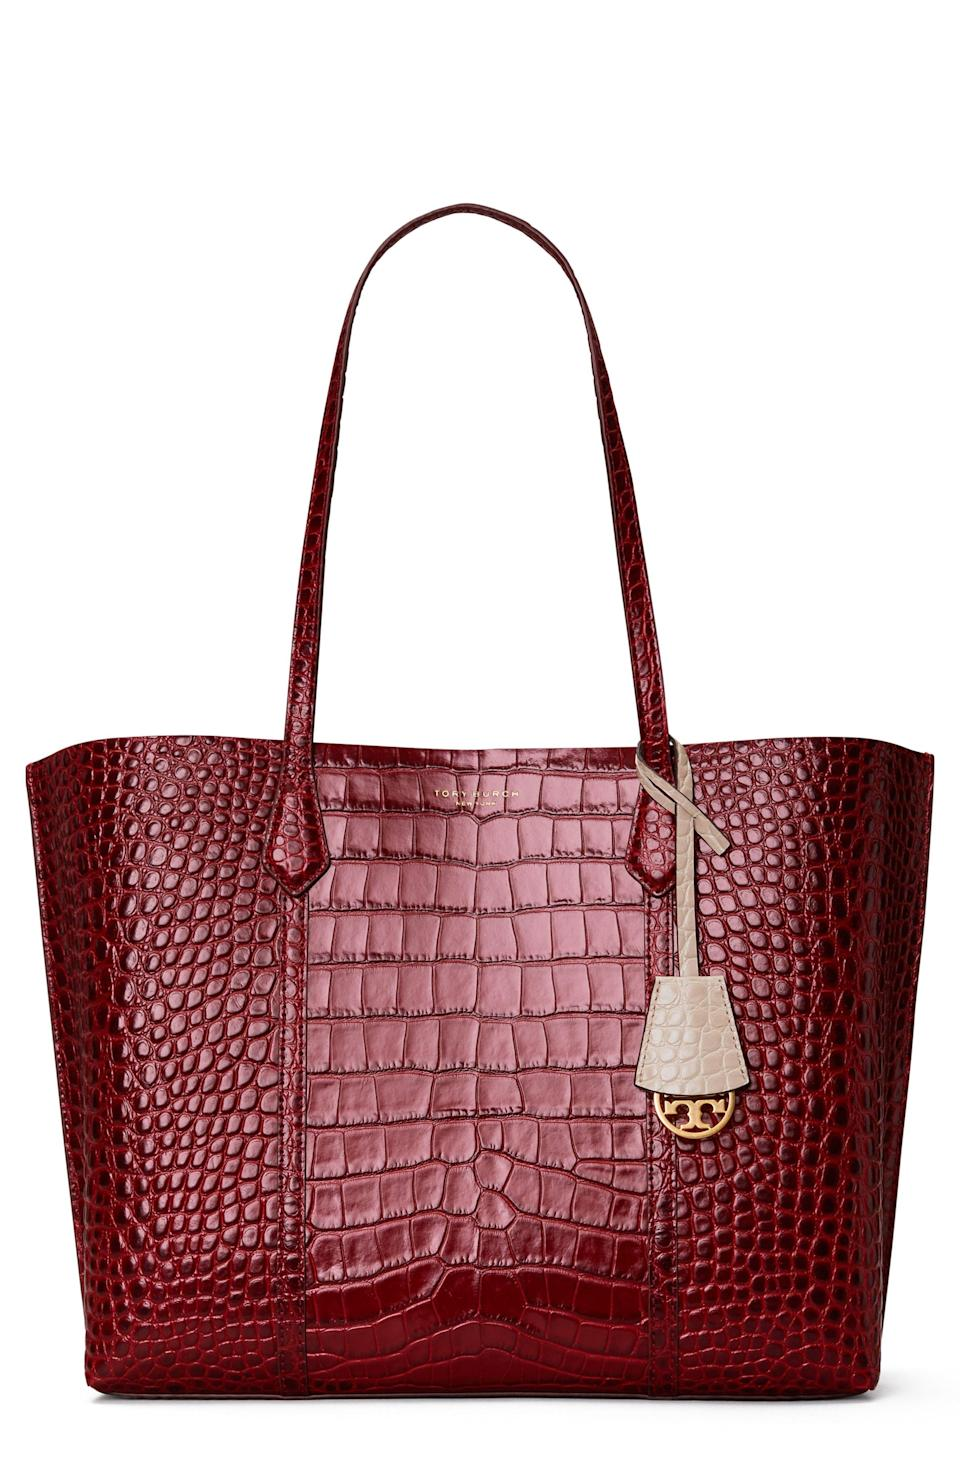 """<p><strong>TORY BURCH</strong></p><p>nordstrom.com</p><p><a href=""""https://go.redirectingat.com?id=74968X1596630&url=https%3A%2F%2Fwww.nordstrom.com%2Fs%2Ftory-burch-perry-croc-embossed-leather-tote%2F5707127&sref=https%3A%2F%2Fwww.townandcountrymag.com%2Fstyle%2Ffashion-trends%2Fg35967828%2Fnordstrom-spring-sale-2021%2F"""" rel=""""nofollow noopener"""" target=""""_blank"""" data-ylk=""""slk:Shop Now"""" class=""""link rapid-noclick-resp"""">Shop Now</a></p><p>$286.80</p><p><em>Original Price: $478</em></p>"""